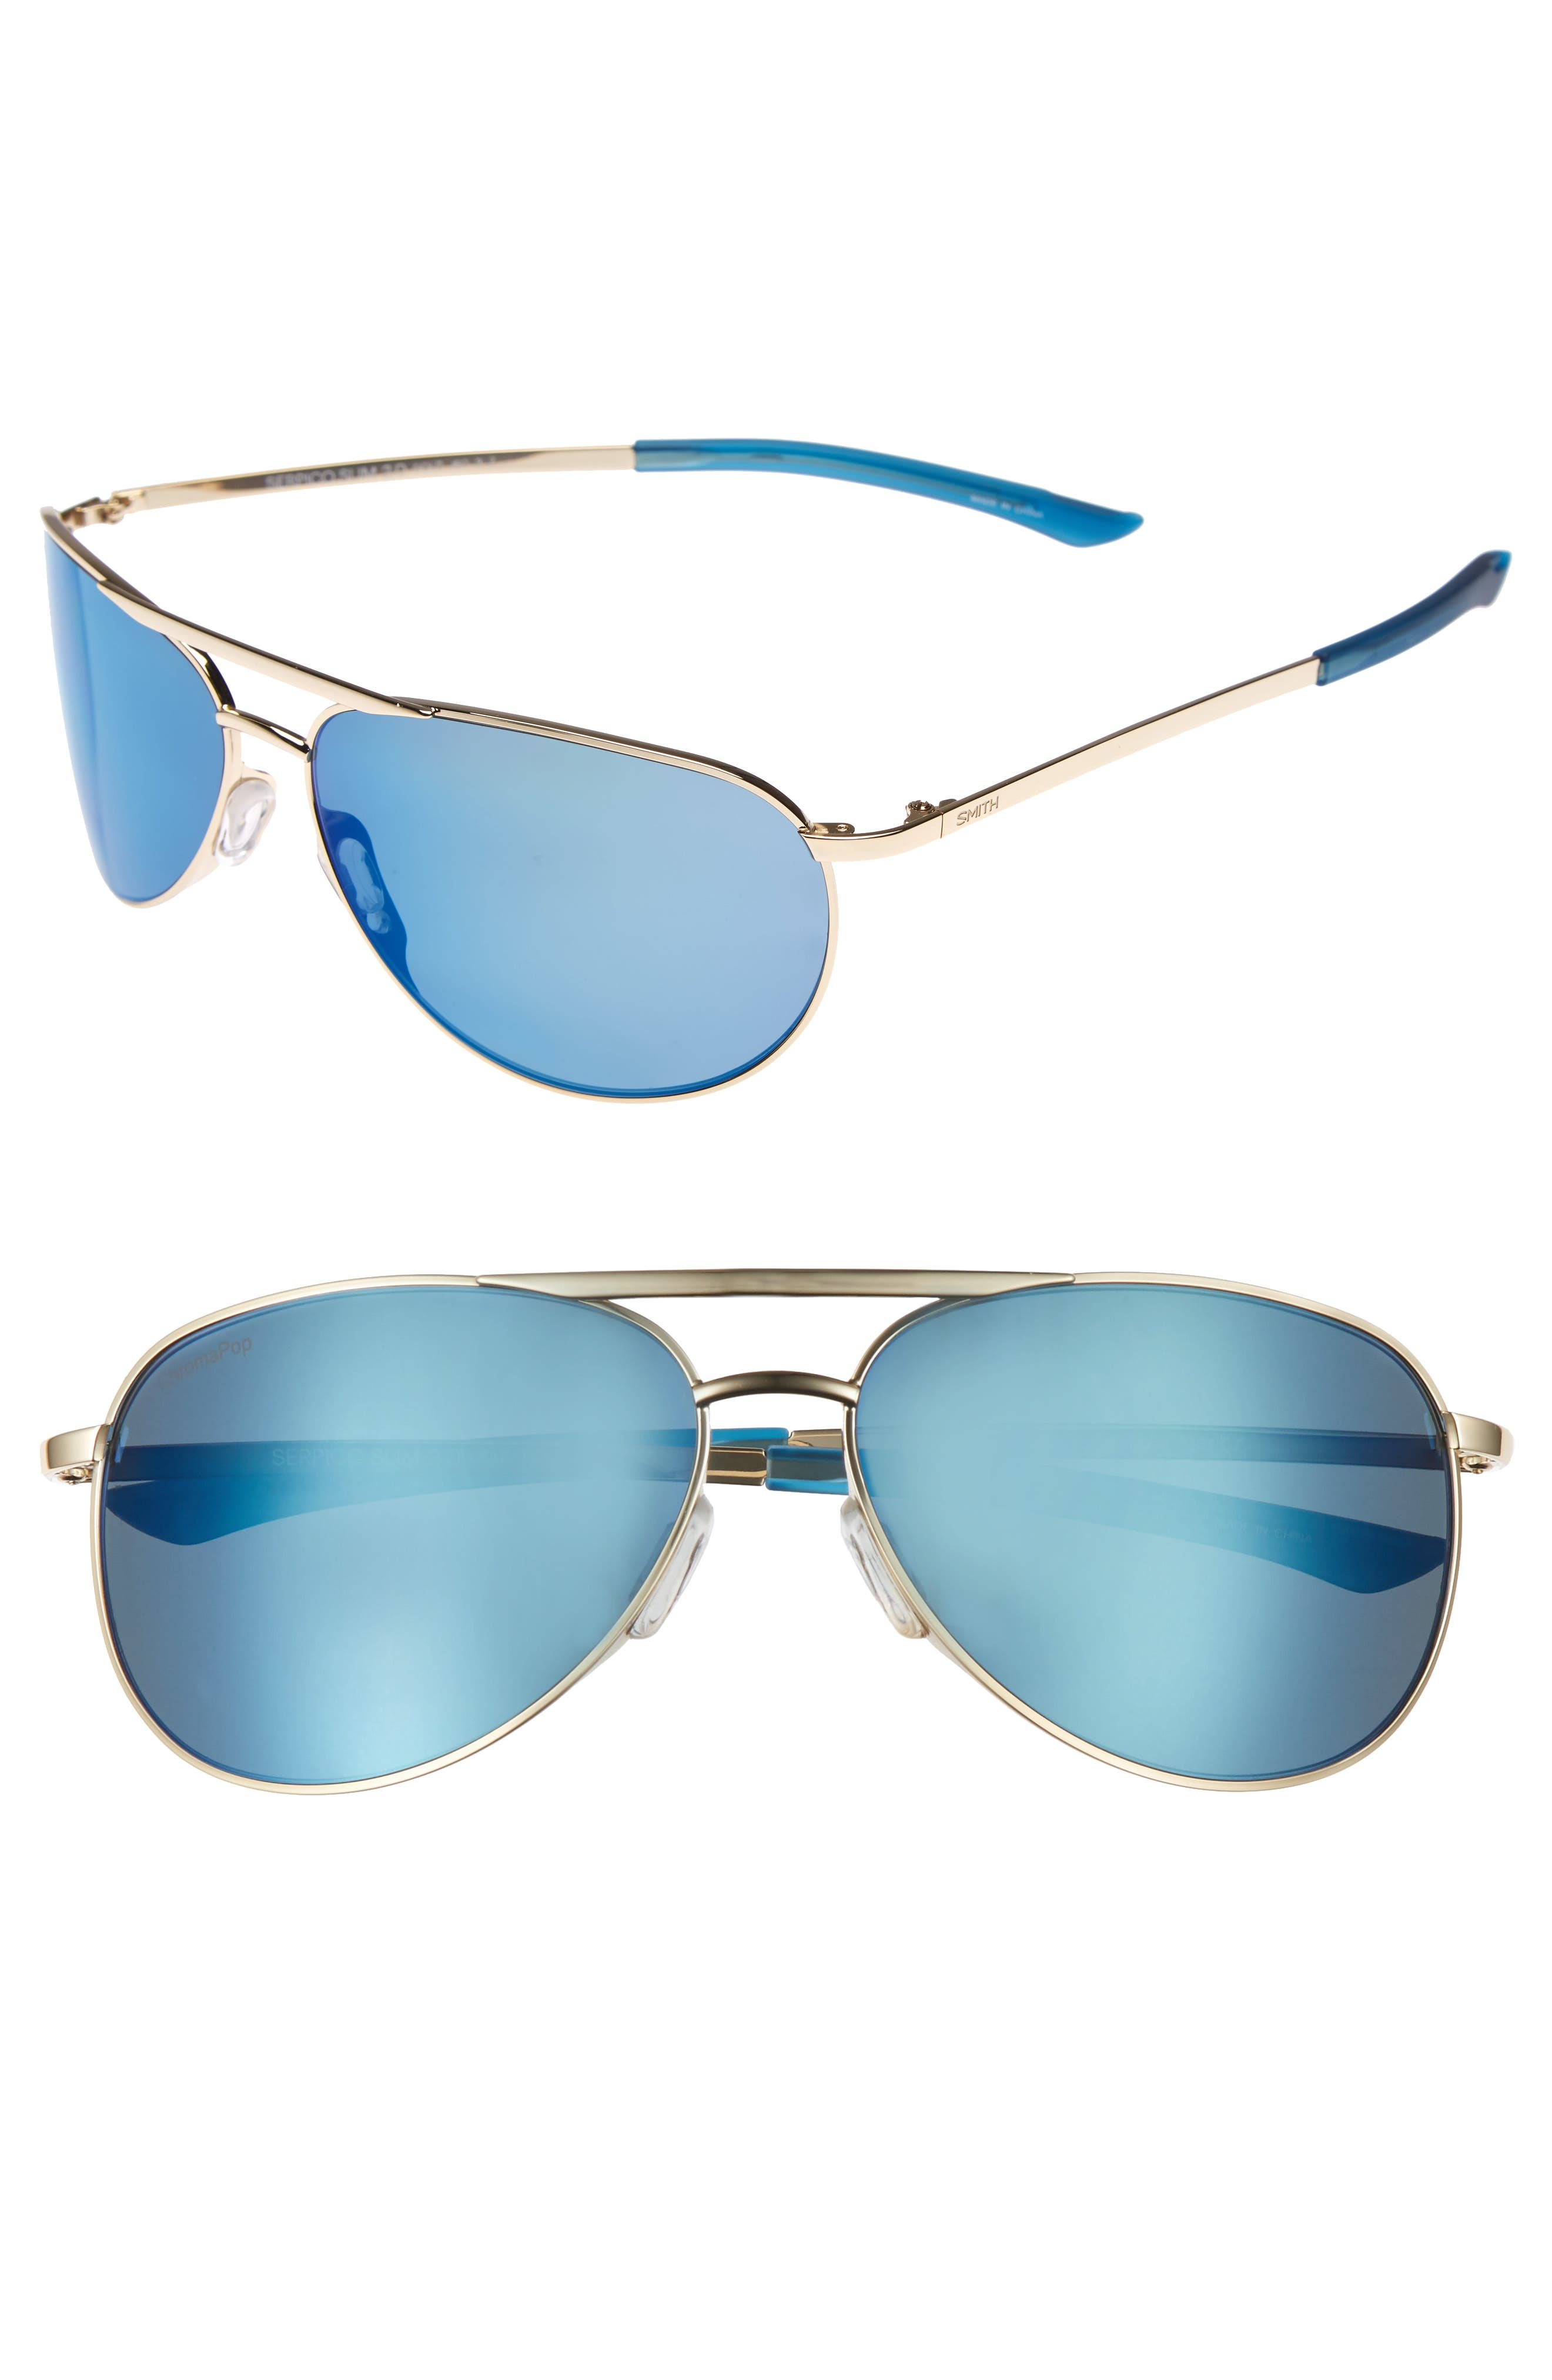 Serpico Slim 2.0 60mm ChromaPop Polarized Aviator Sunglasses,                             Main thumbnail 1, color,                             Gold/ Blue Polar